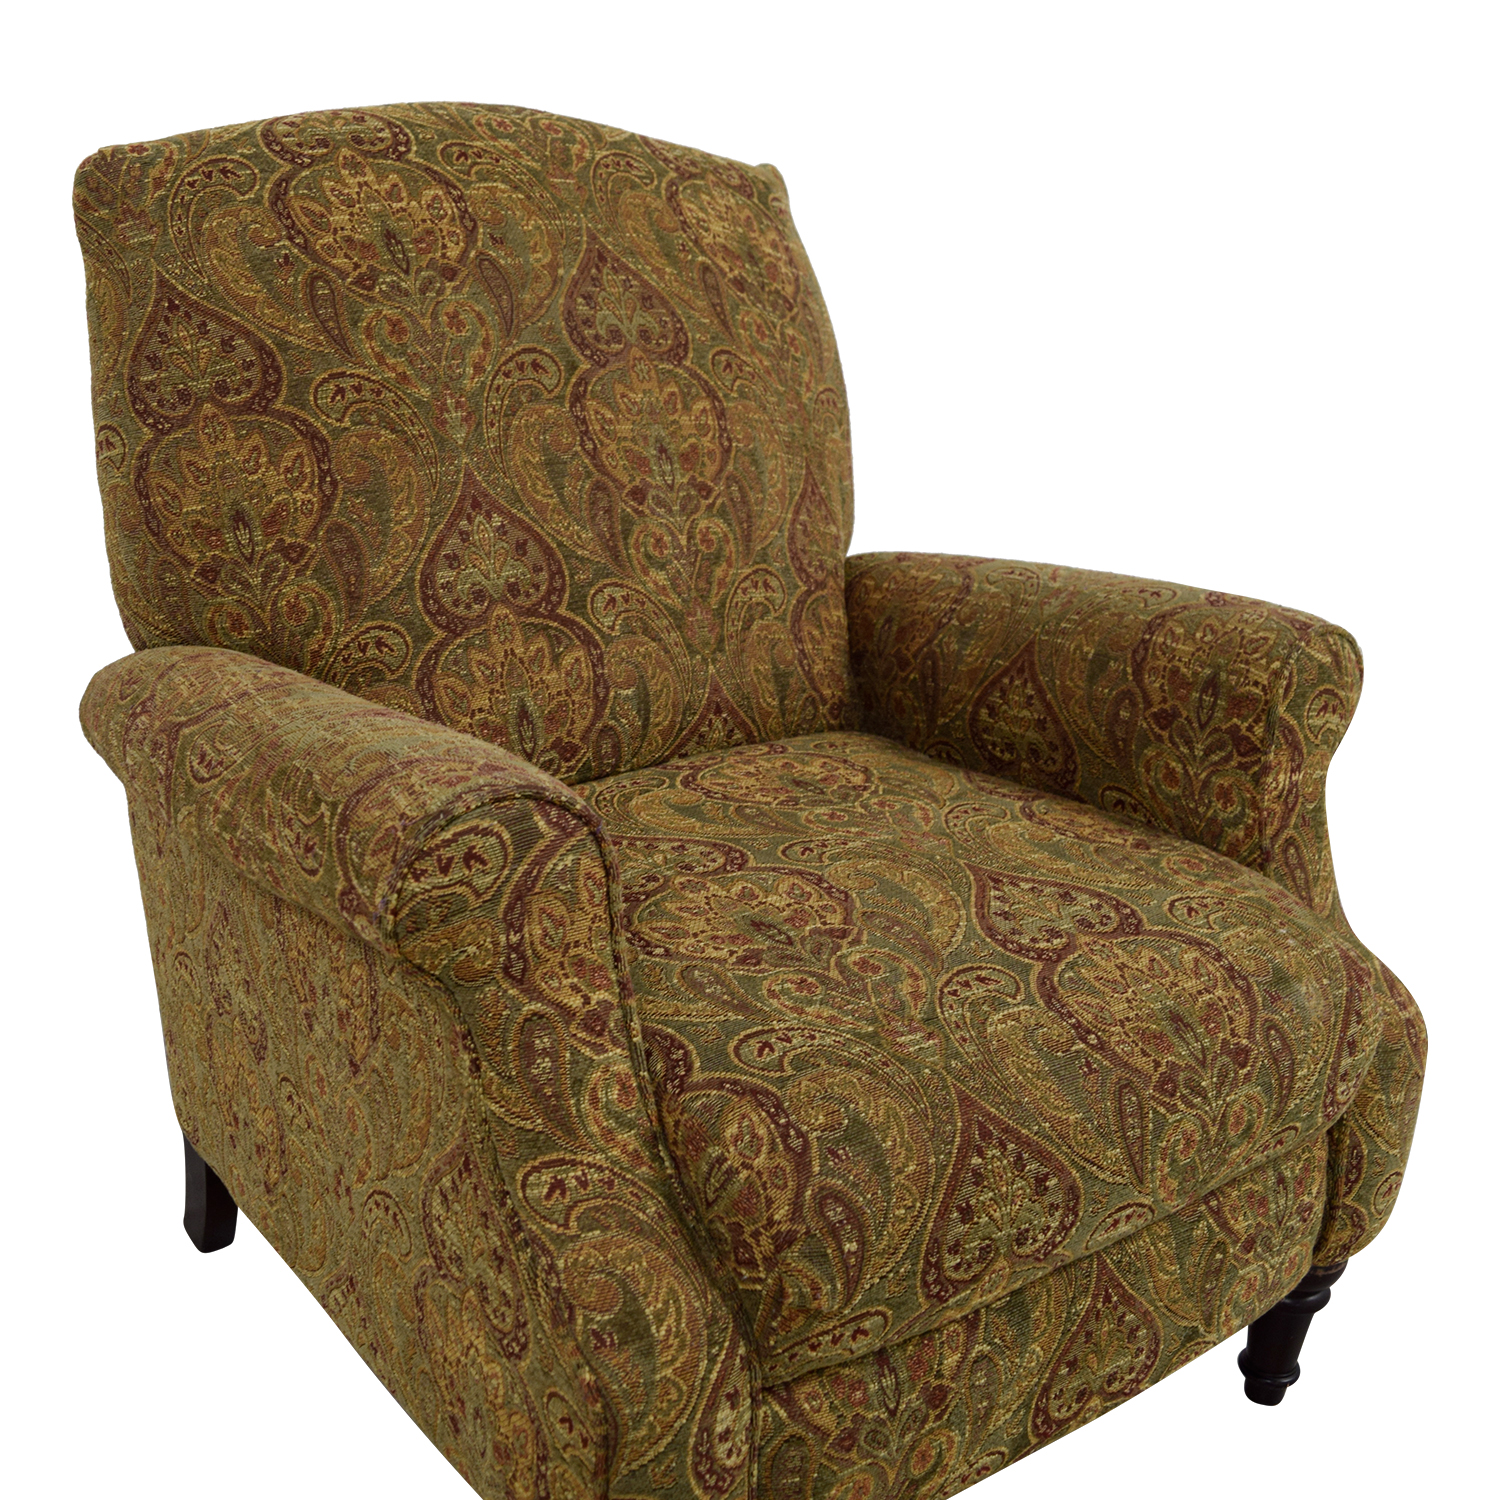 81 Off Green And Burgundy Paisley Recliner Chairs